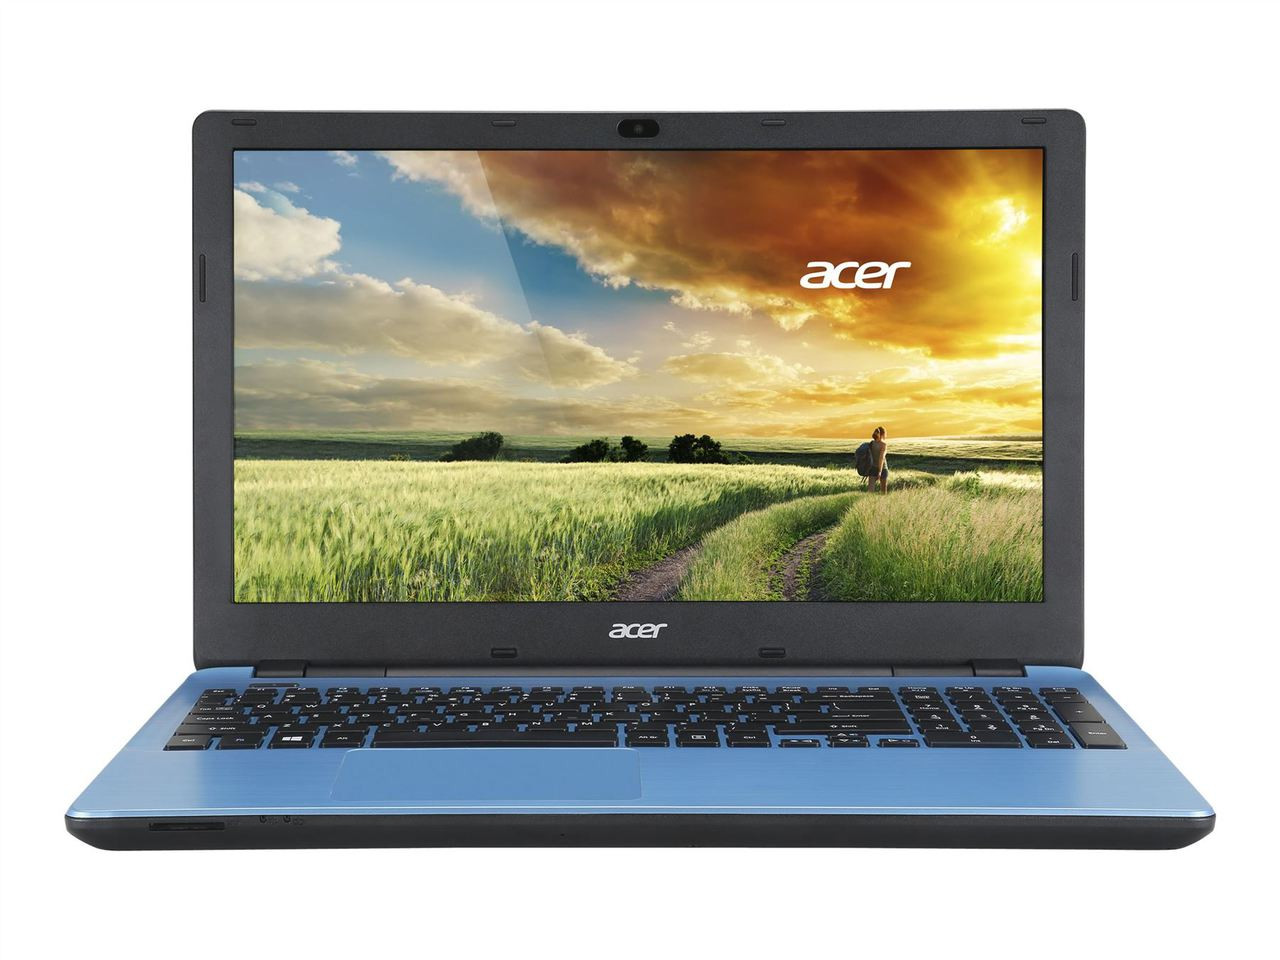 ACER ASPIRE E5-531 ATHEROS WLAN WINDOWS 7 DRIVERS DOWNLOAD